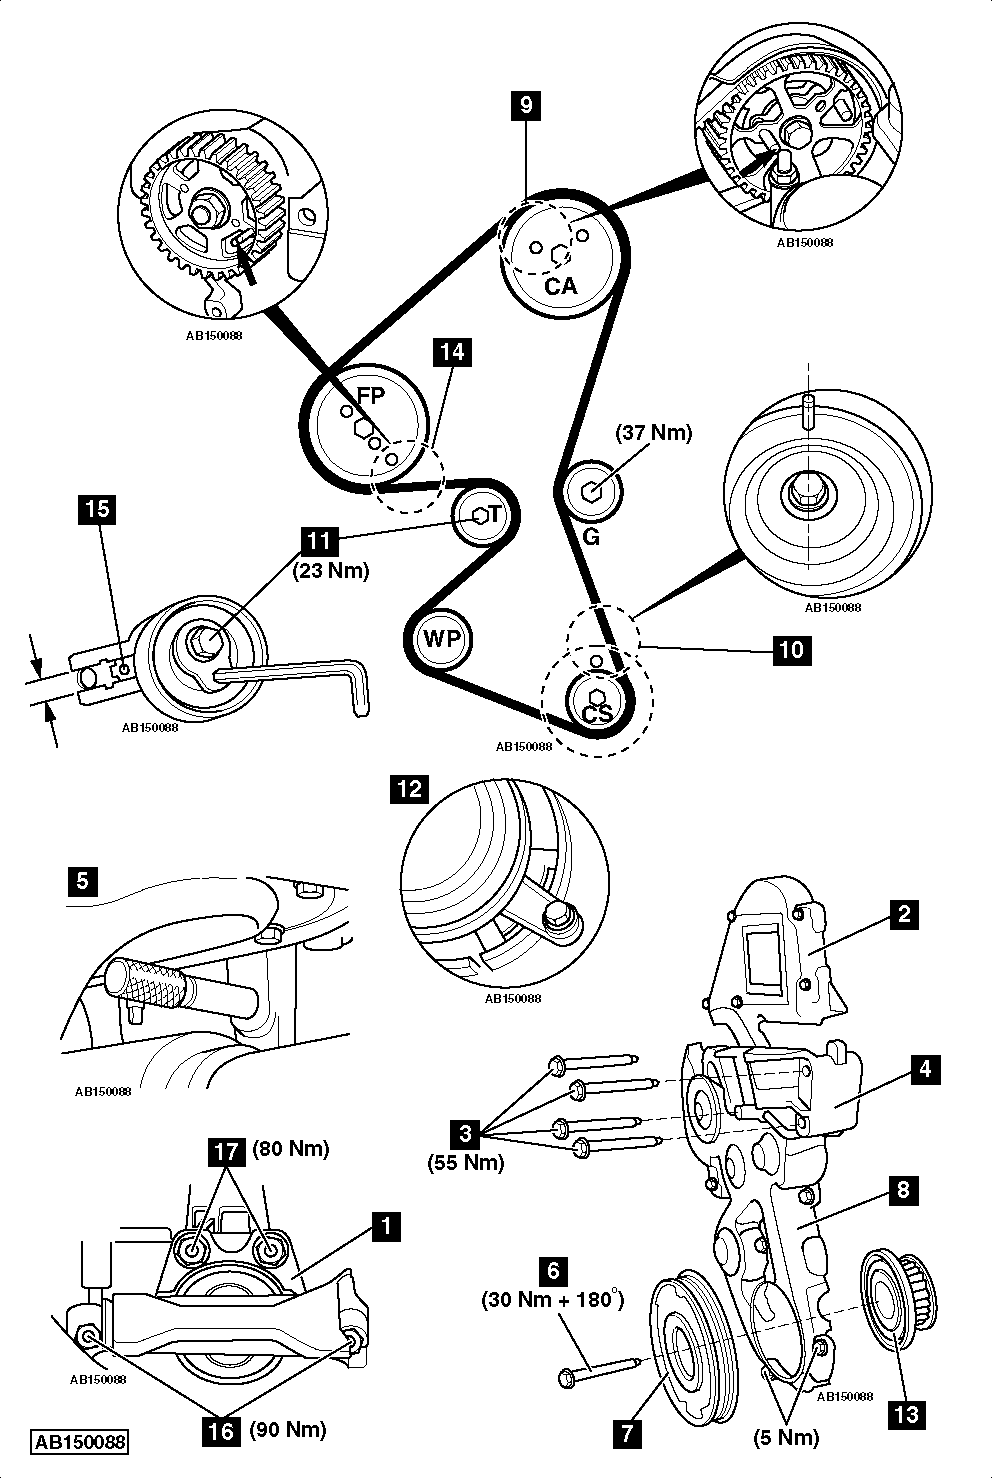 saab 9 3 2 0 engine diagram